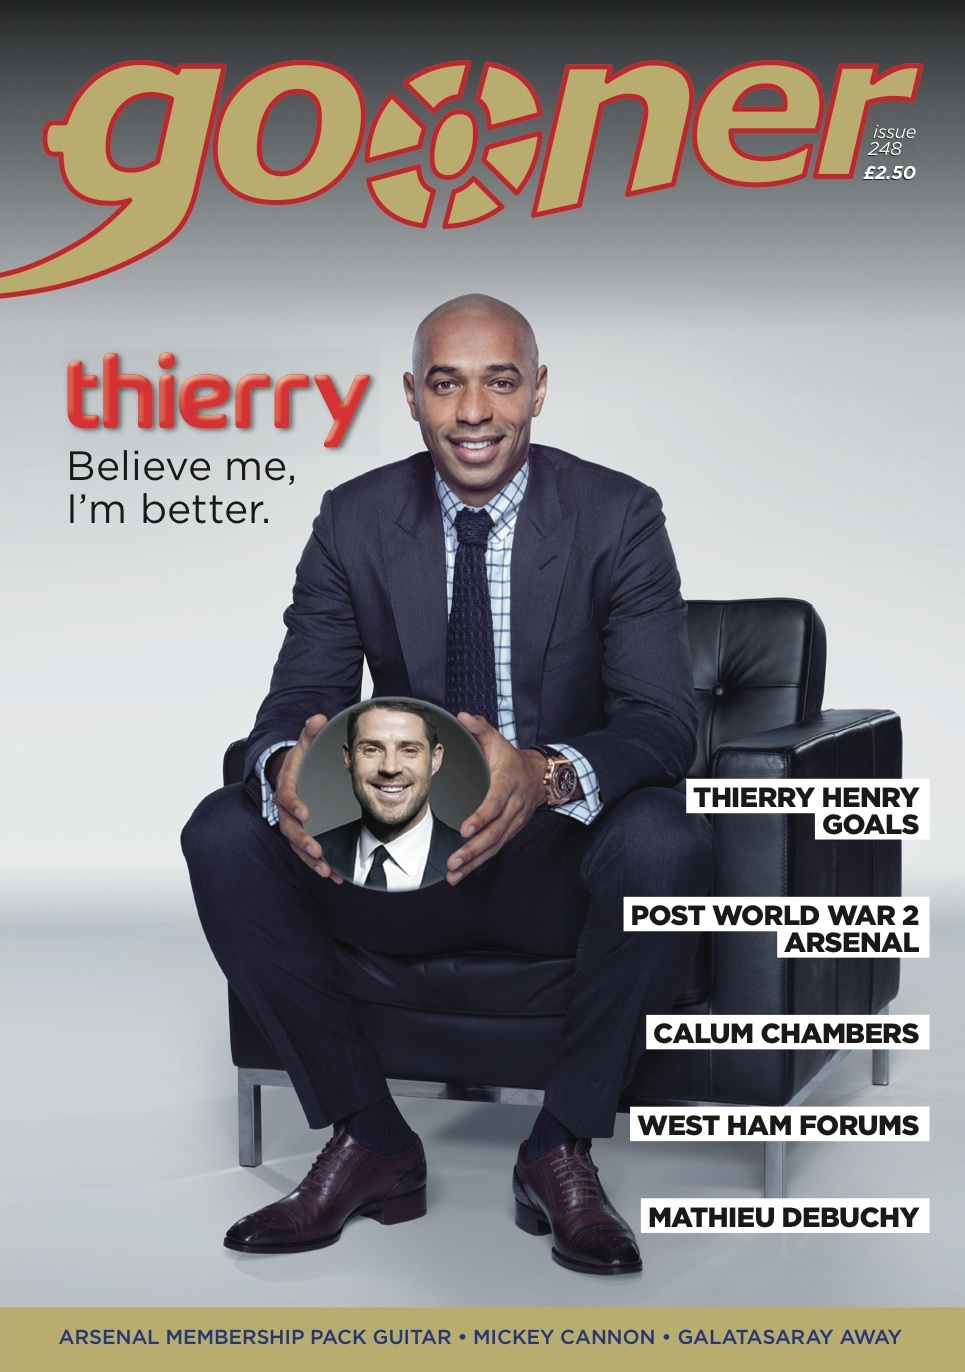 The Gooner - Issue 248